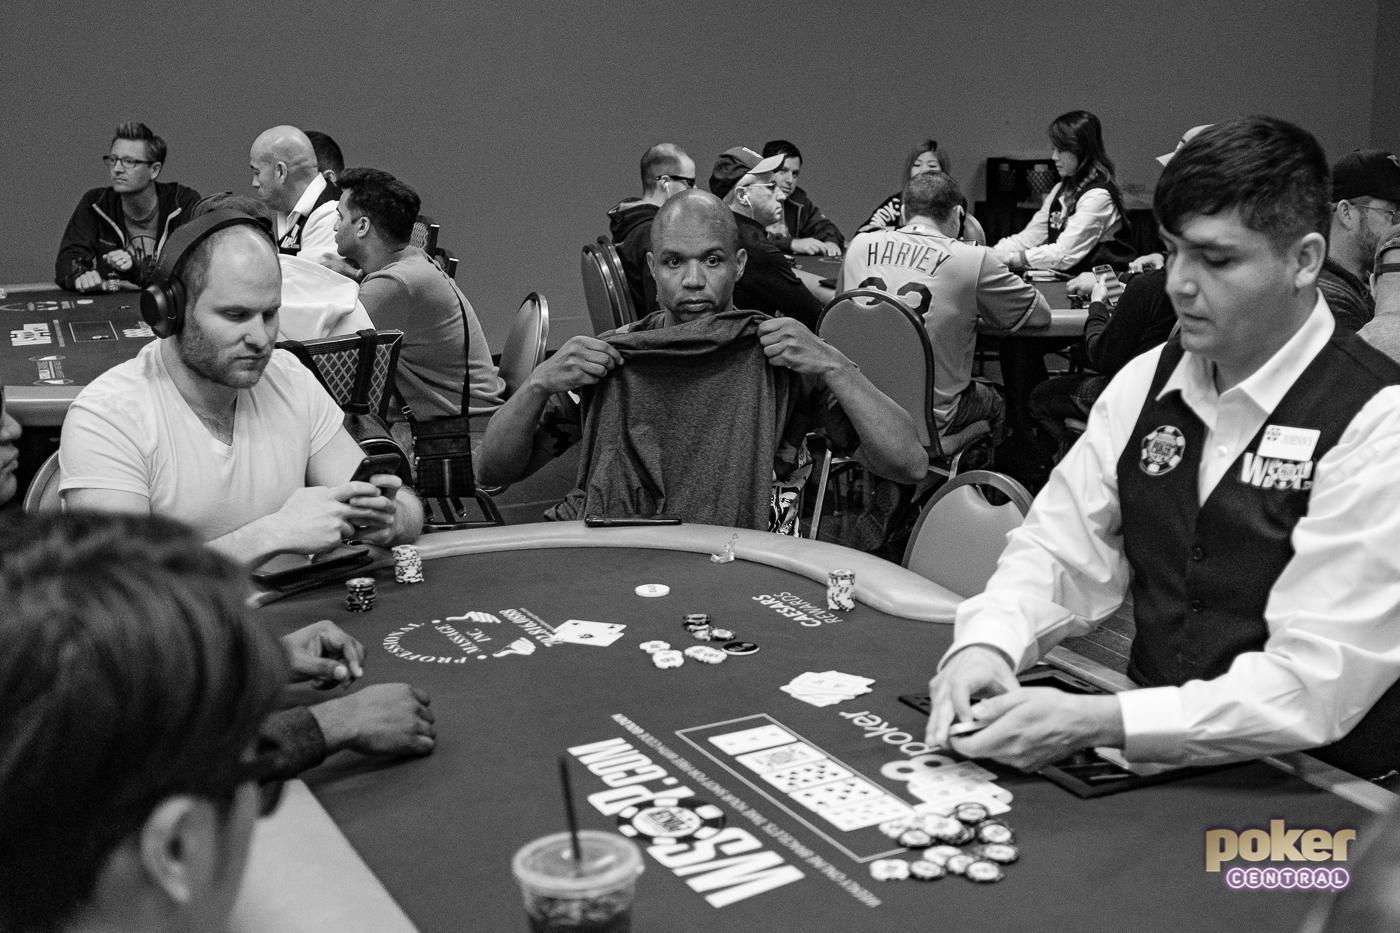 Moments before Phil Ivey's elimination from the 2019 WSOP Main Event.